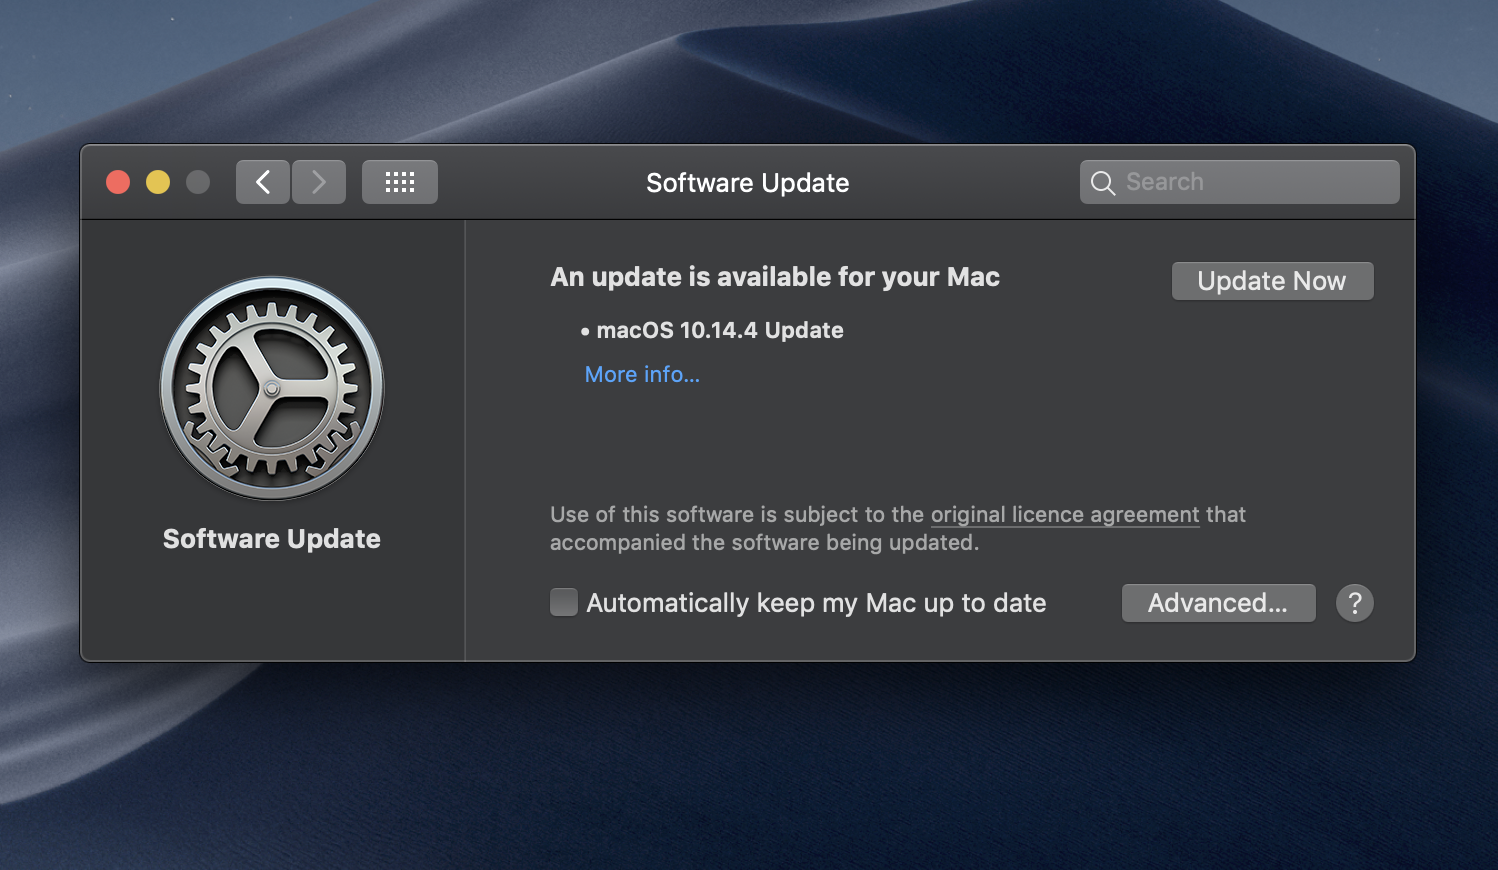 Apple Outs macOS Mojave 10 14 4 with Safari Improvements, AirPods 2